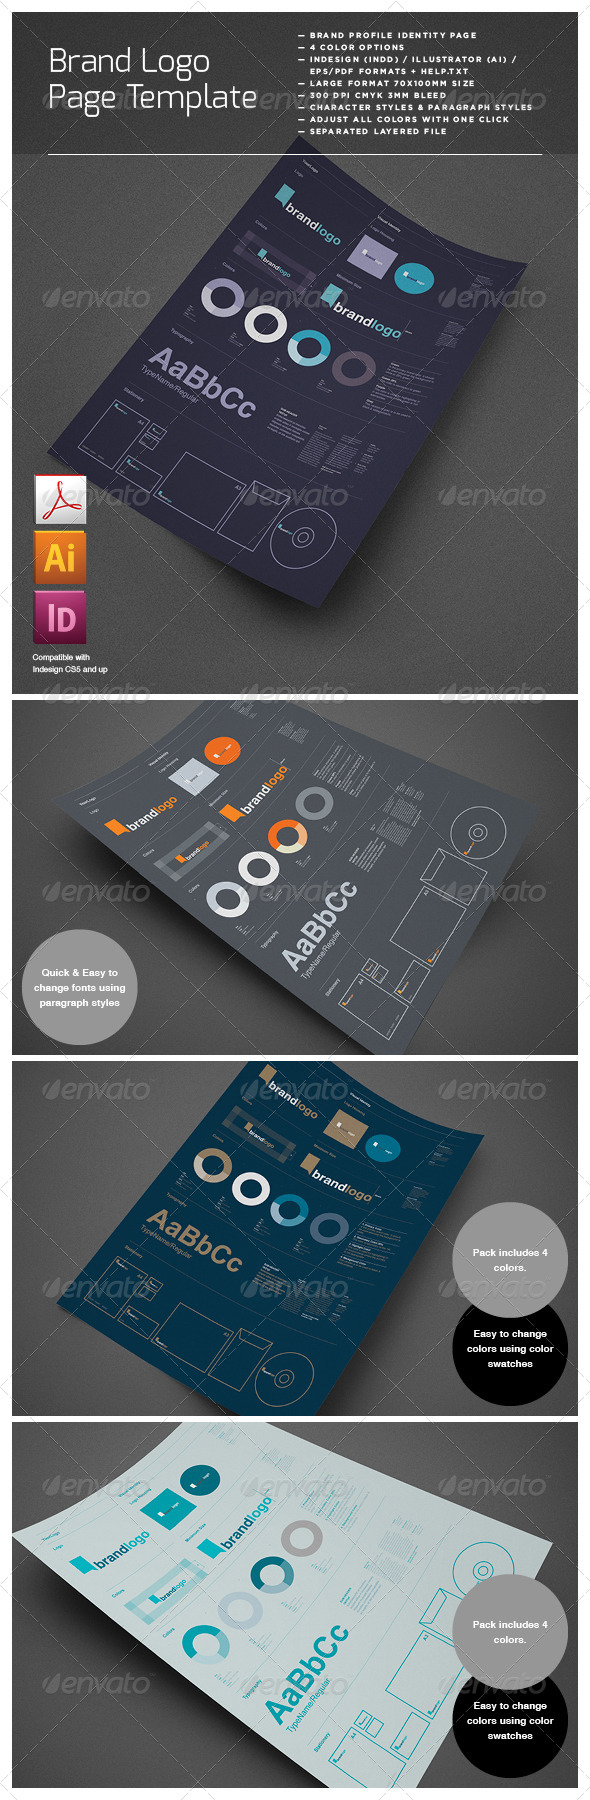 Brand Logo Identity Layout Page - Proposals & Invoices Stationery